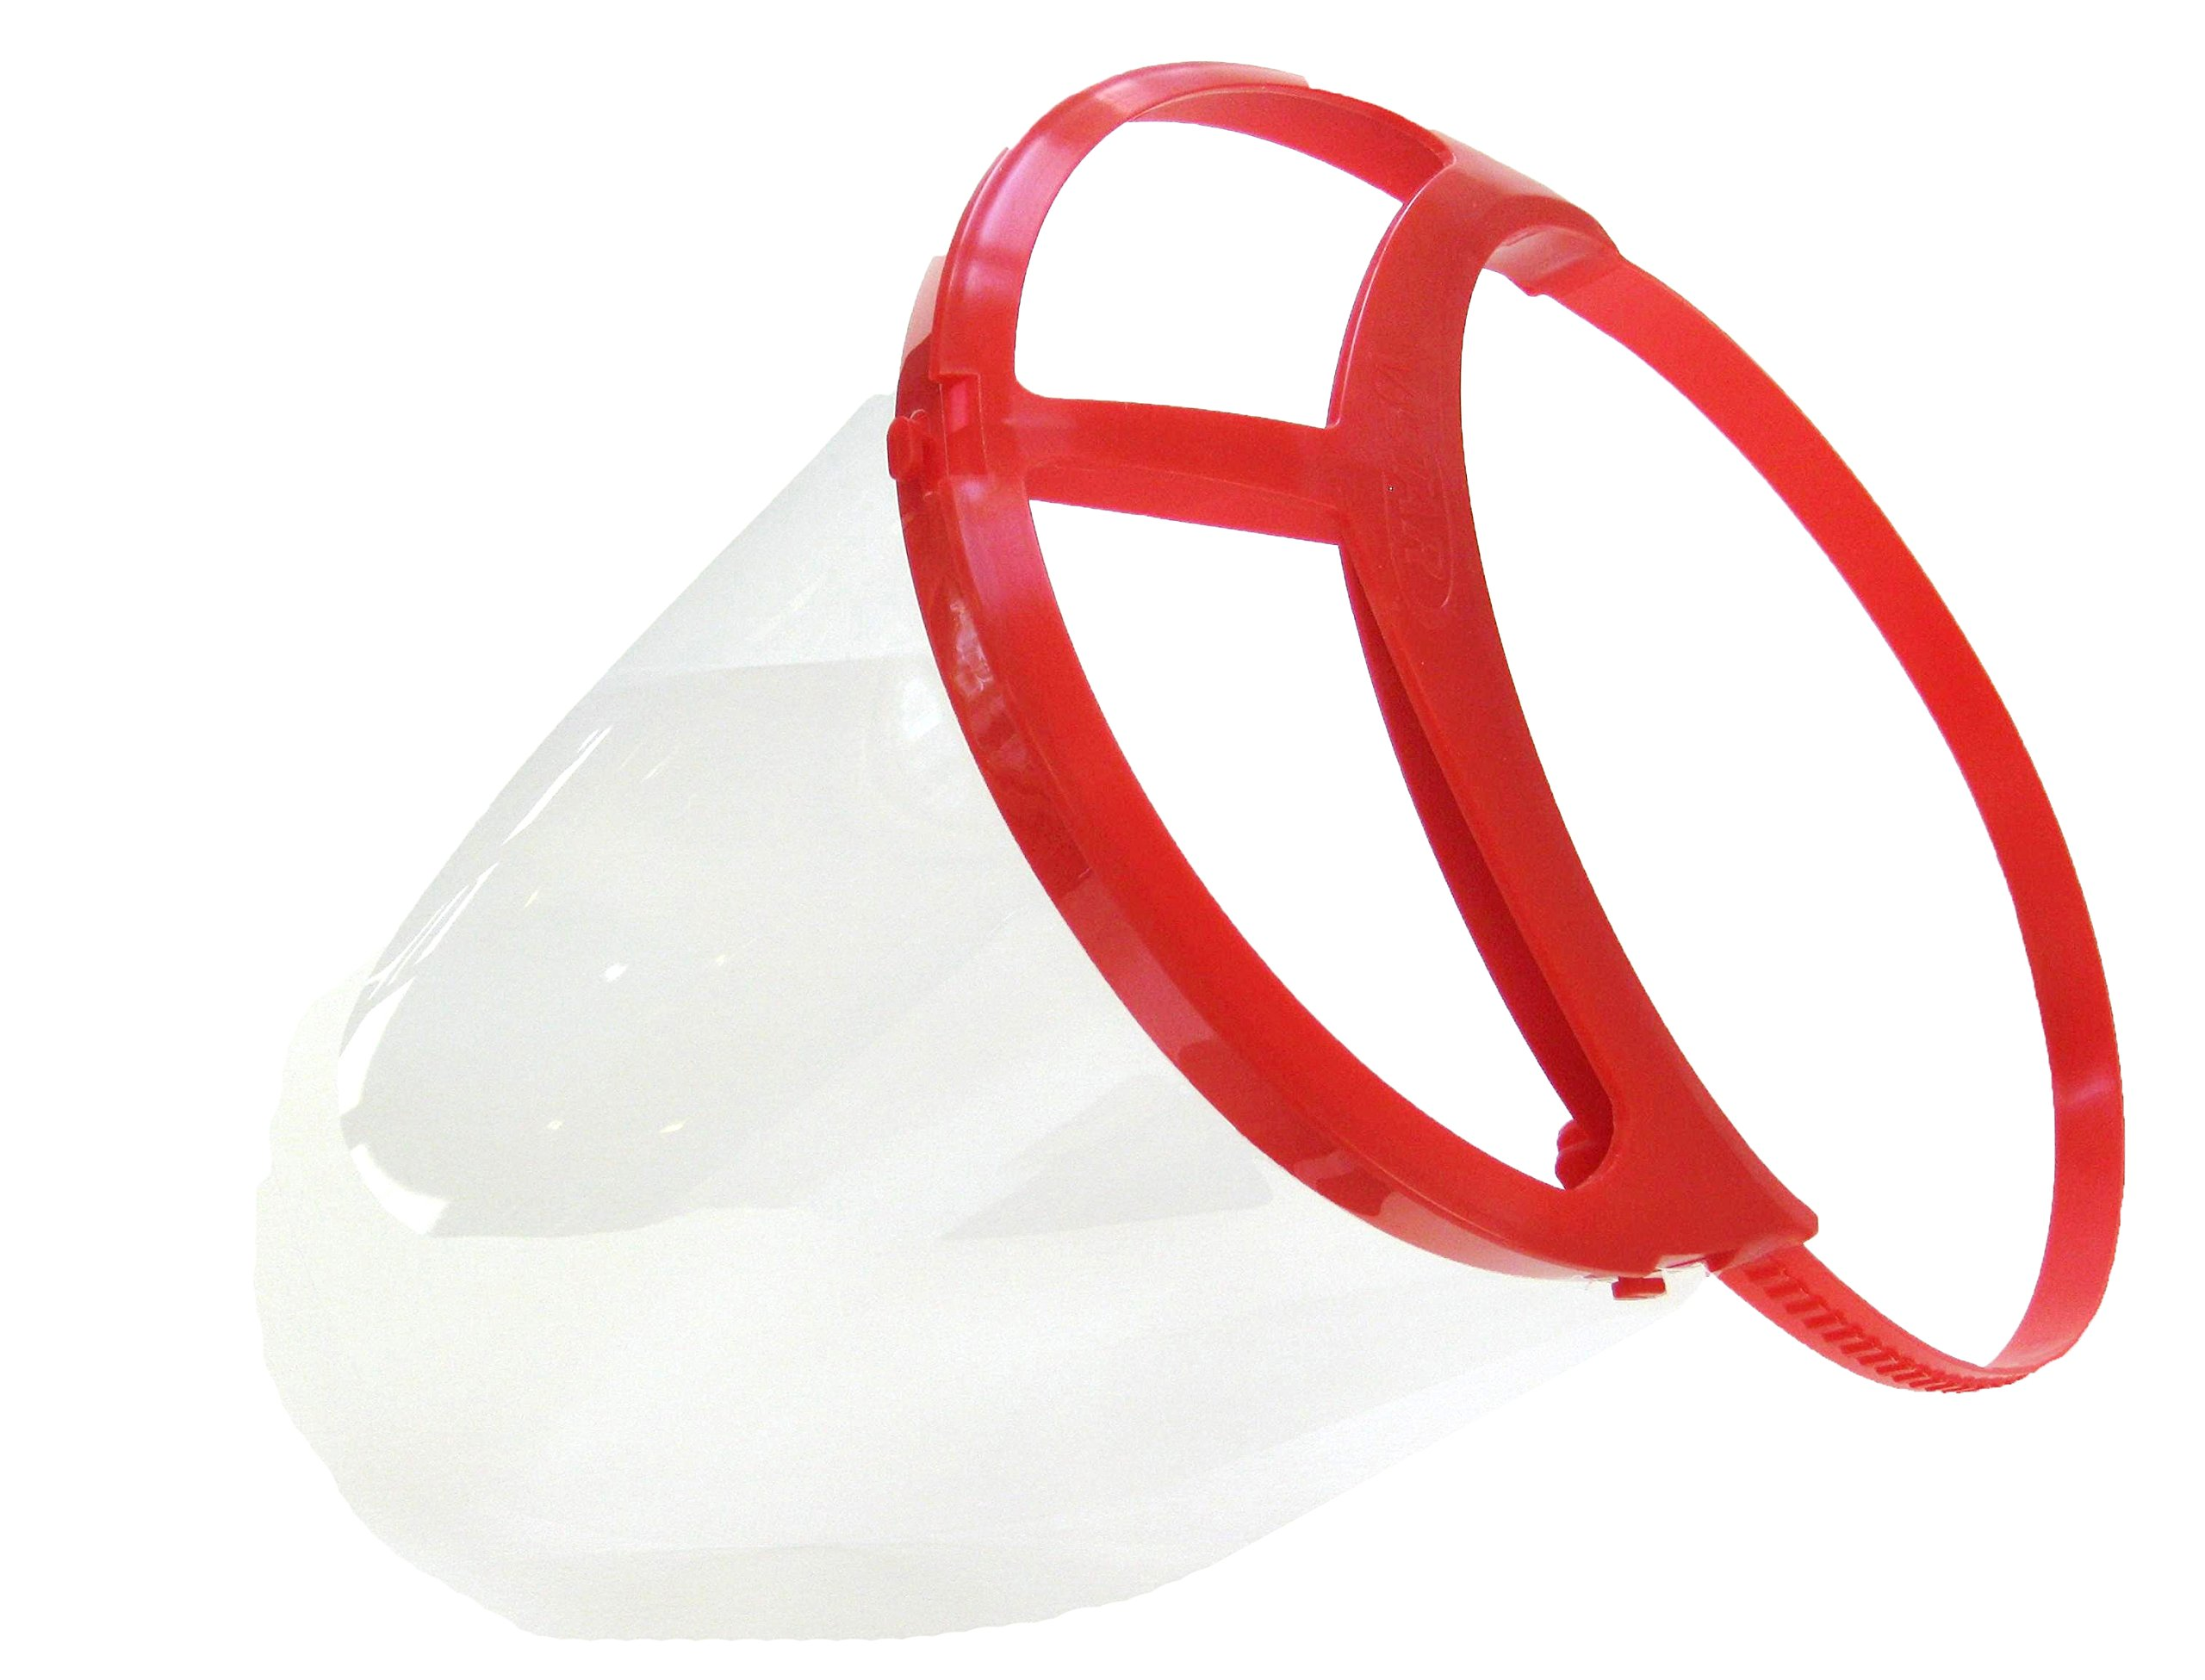 Bio-Mask Face Shield With 10 Shields (Red) by Bio-Mask (Image #1)